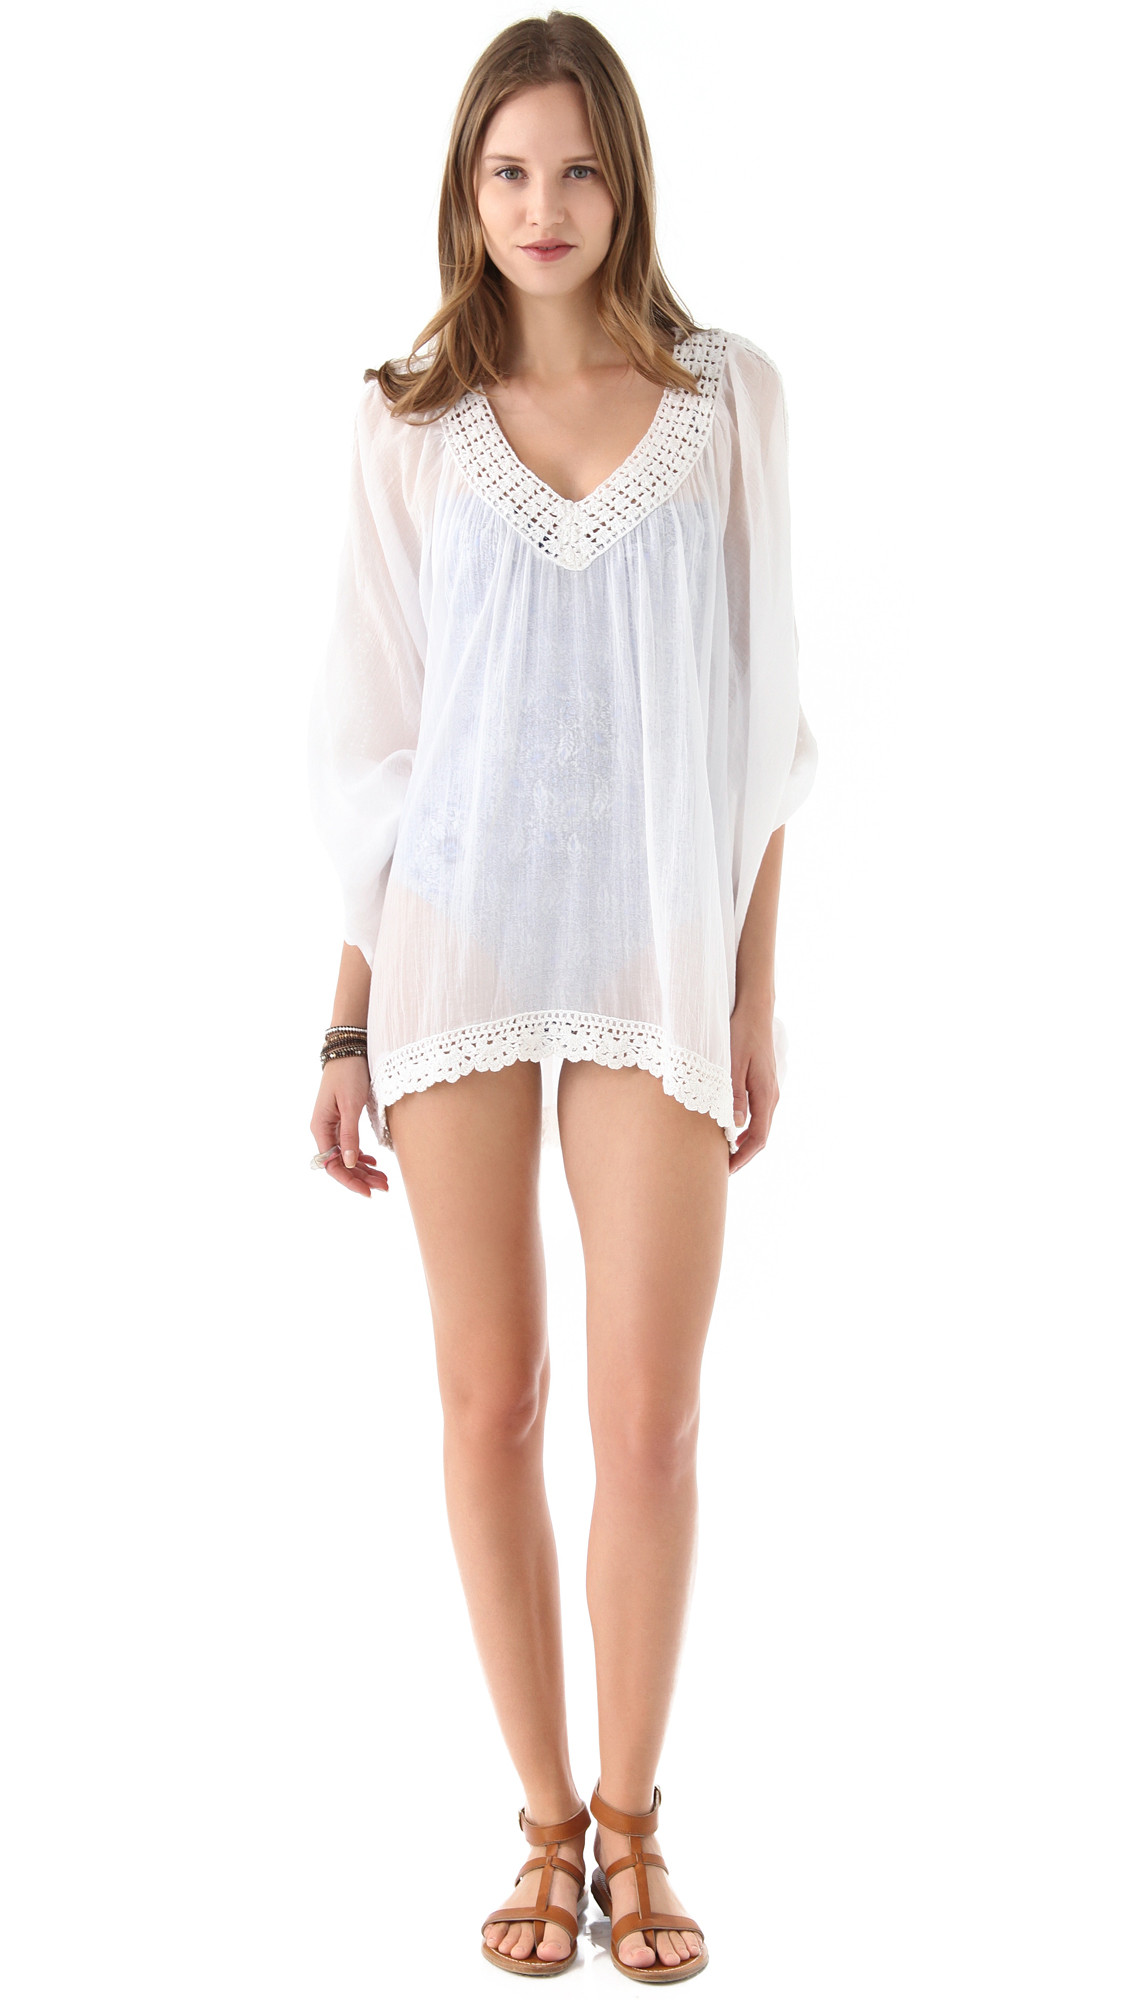 White Crochet Cover Up Best Of Dademar Crochet Cover Up Dress In White Of Unique 42 Pictures White Crochet Cover Up